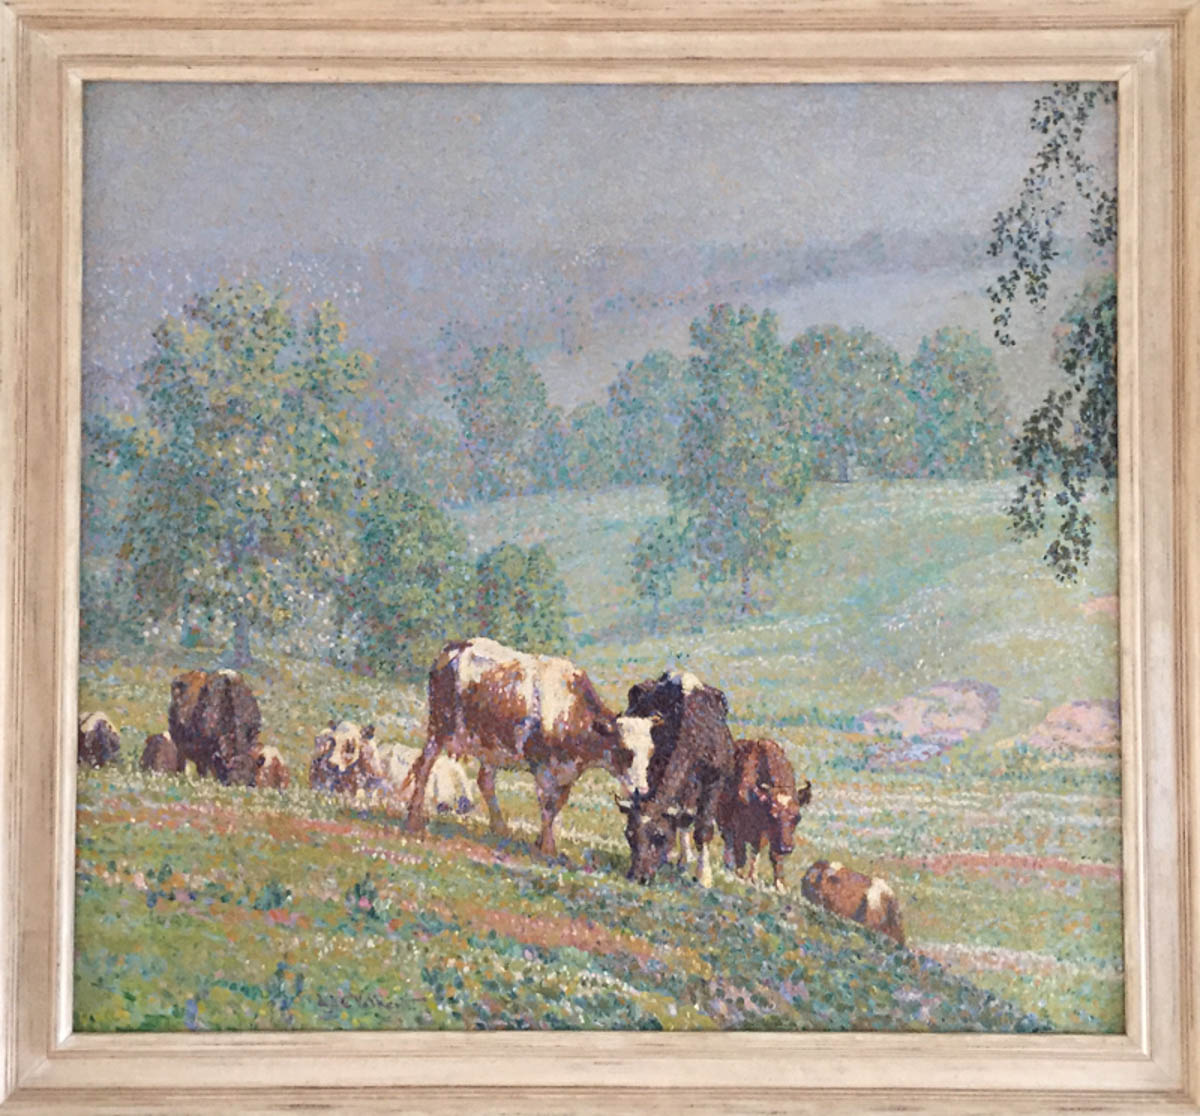 Untitled [Cows grazing on steep slope, dotted brushwork]